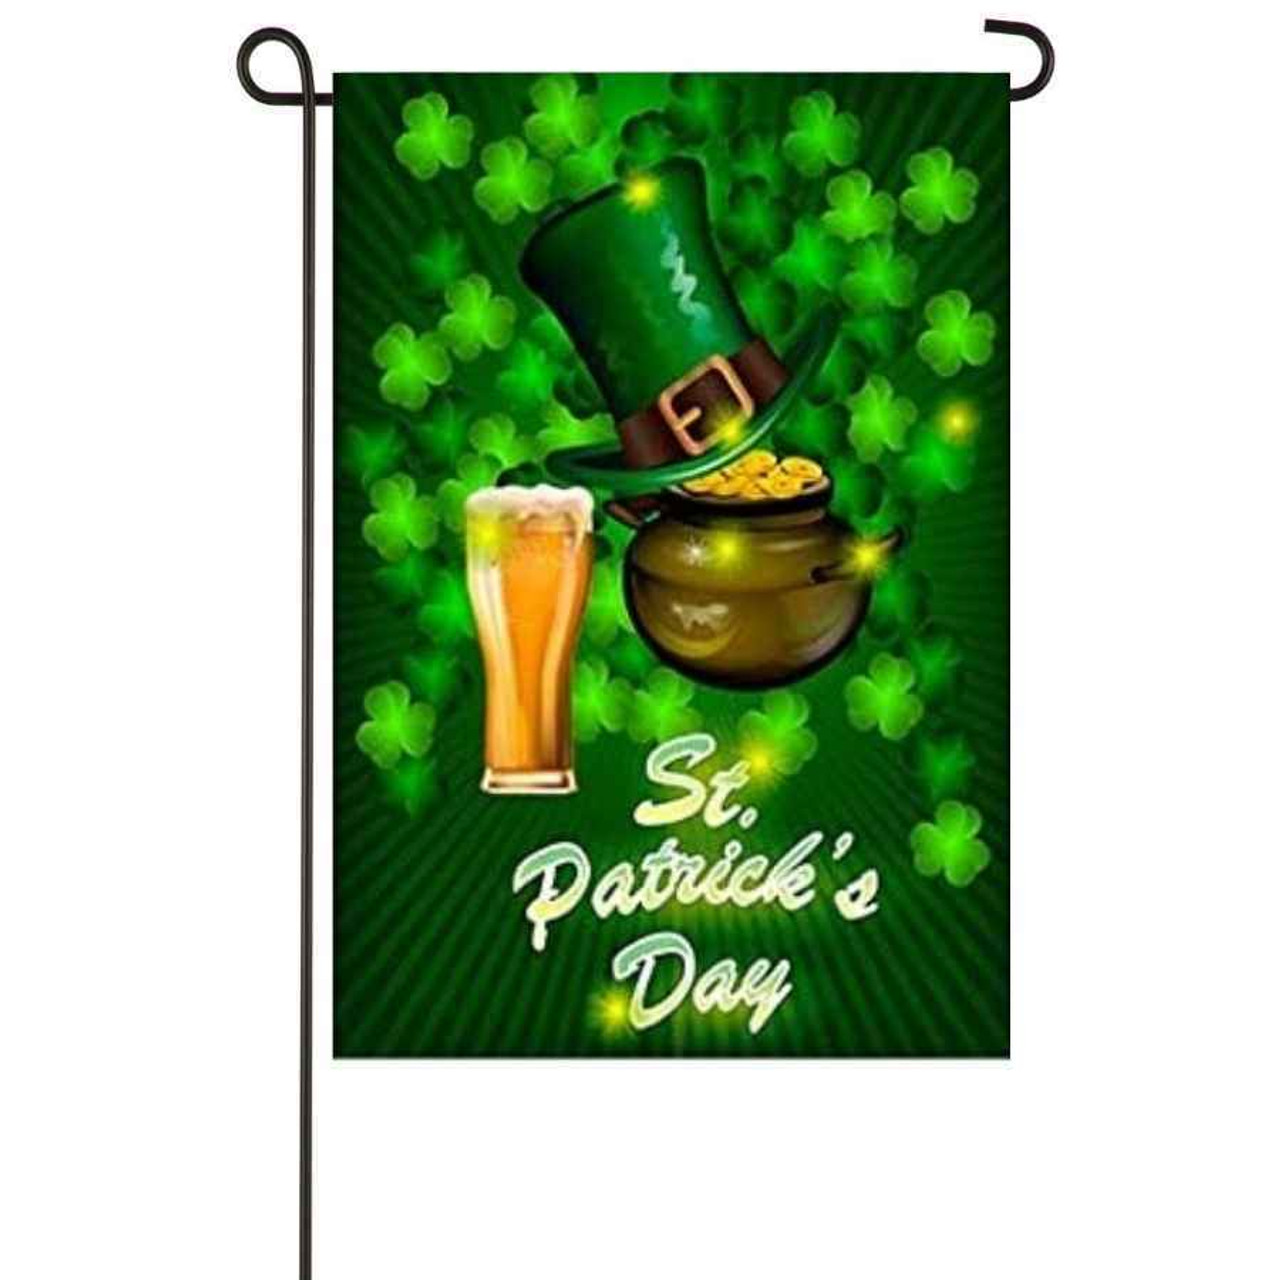 """A green garden flag with a pot of gold, a green top hat, and a glass of beer. The background has a bunch of green shamrocks and the bottom says """"St. Patrick's Day."""""""